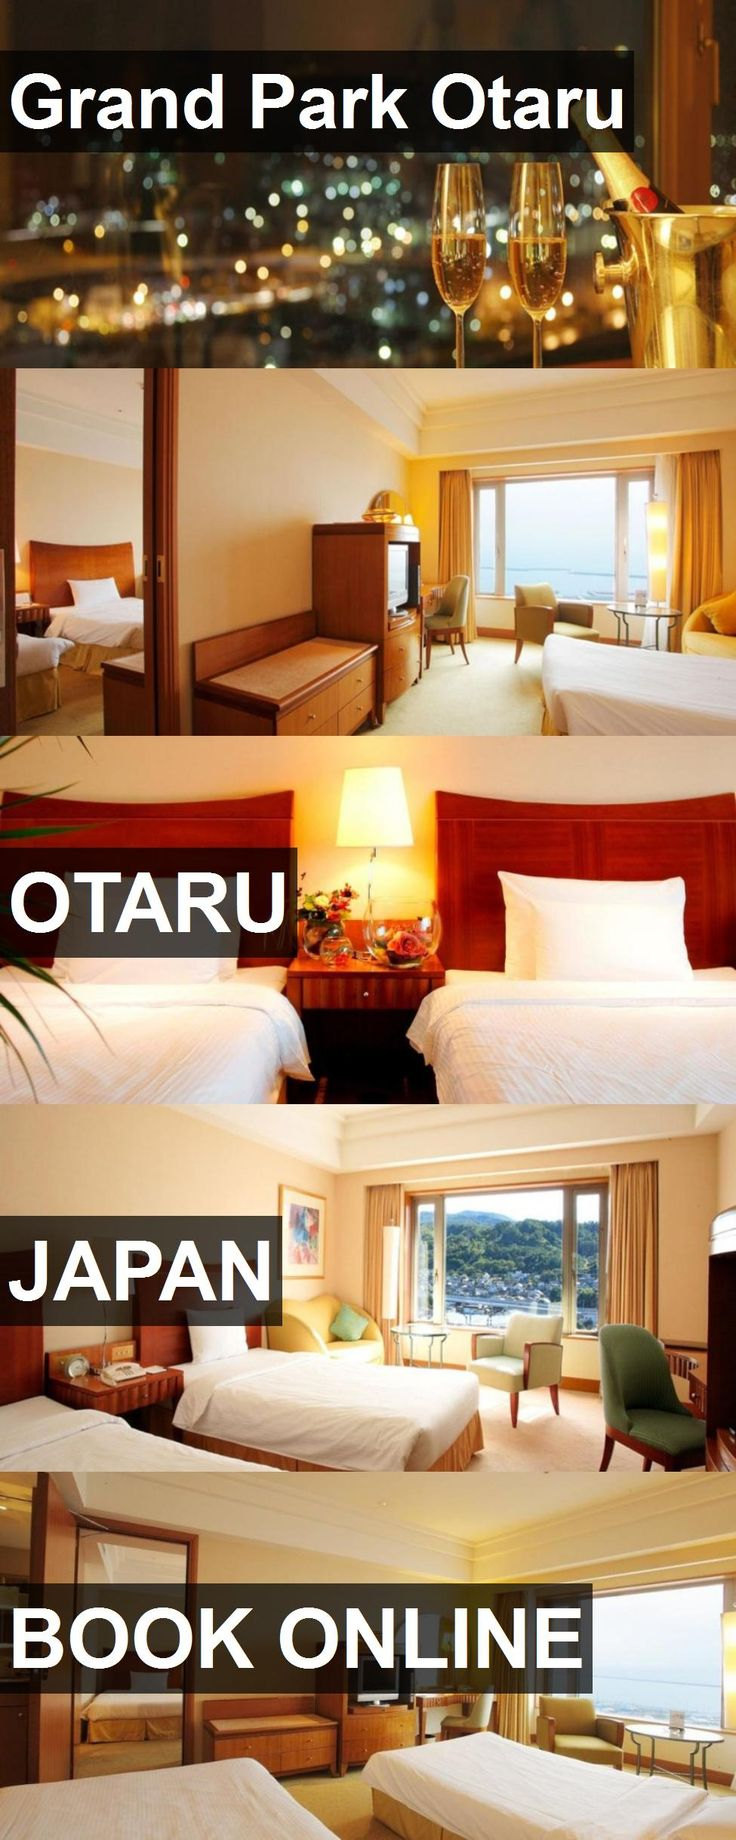 Hotel Grand Park Otaru in Otaru, Japan. For more information, photos, reviews and best prices please follow the link. #Japan #Otaru #travel #vacation #hotel